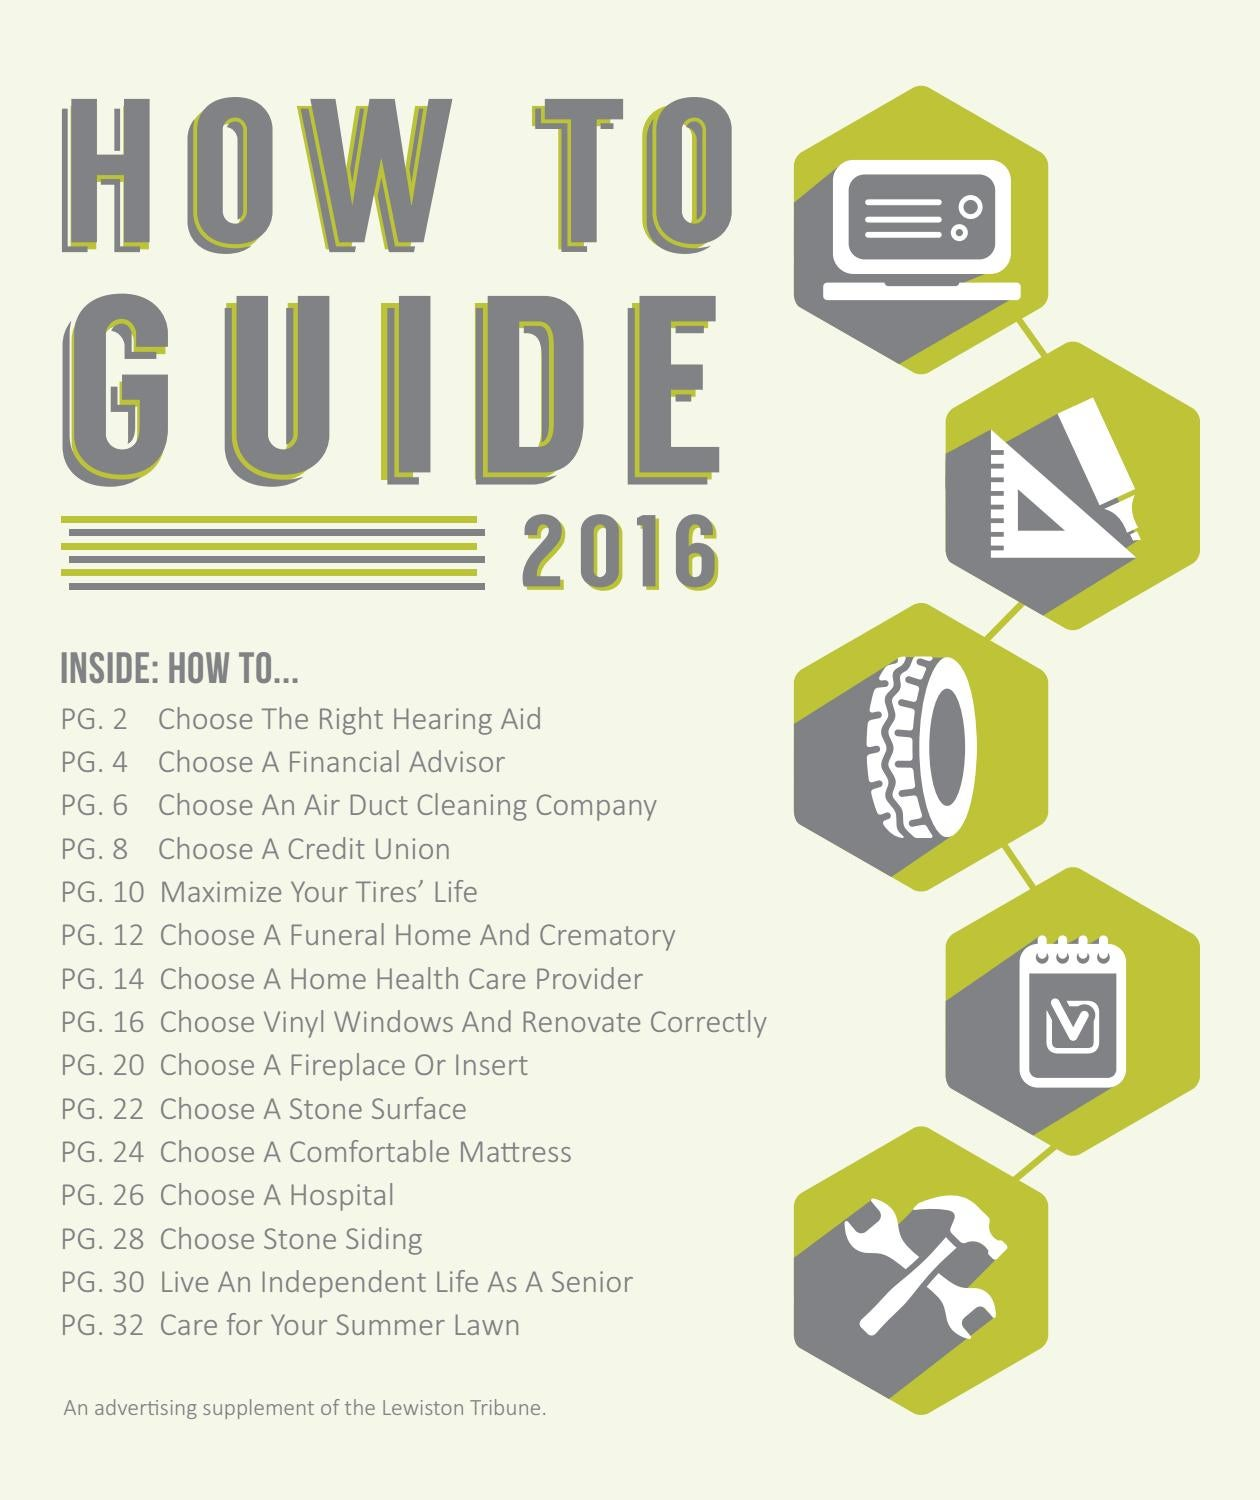 How To Guide 2016 By Lewiston Tribune Issuu